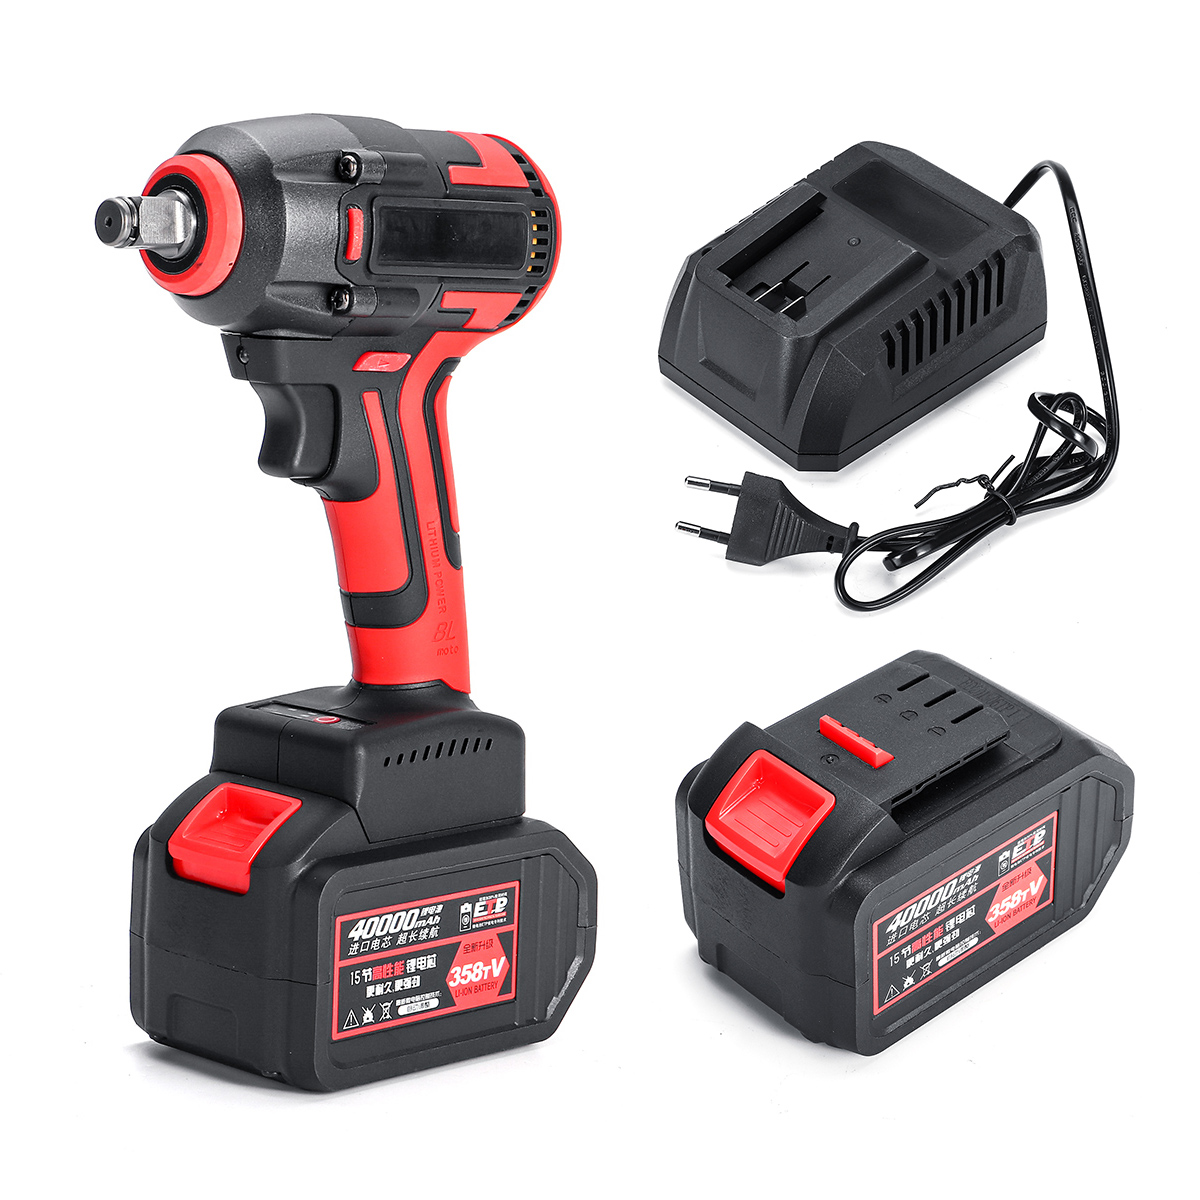 Doersupp 358tV Electric Wrench Brushless Brushless Impact Wrench 680Nm Torque Drill 40000mah With LED Dril Installation Tools